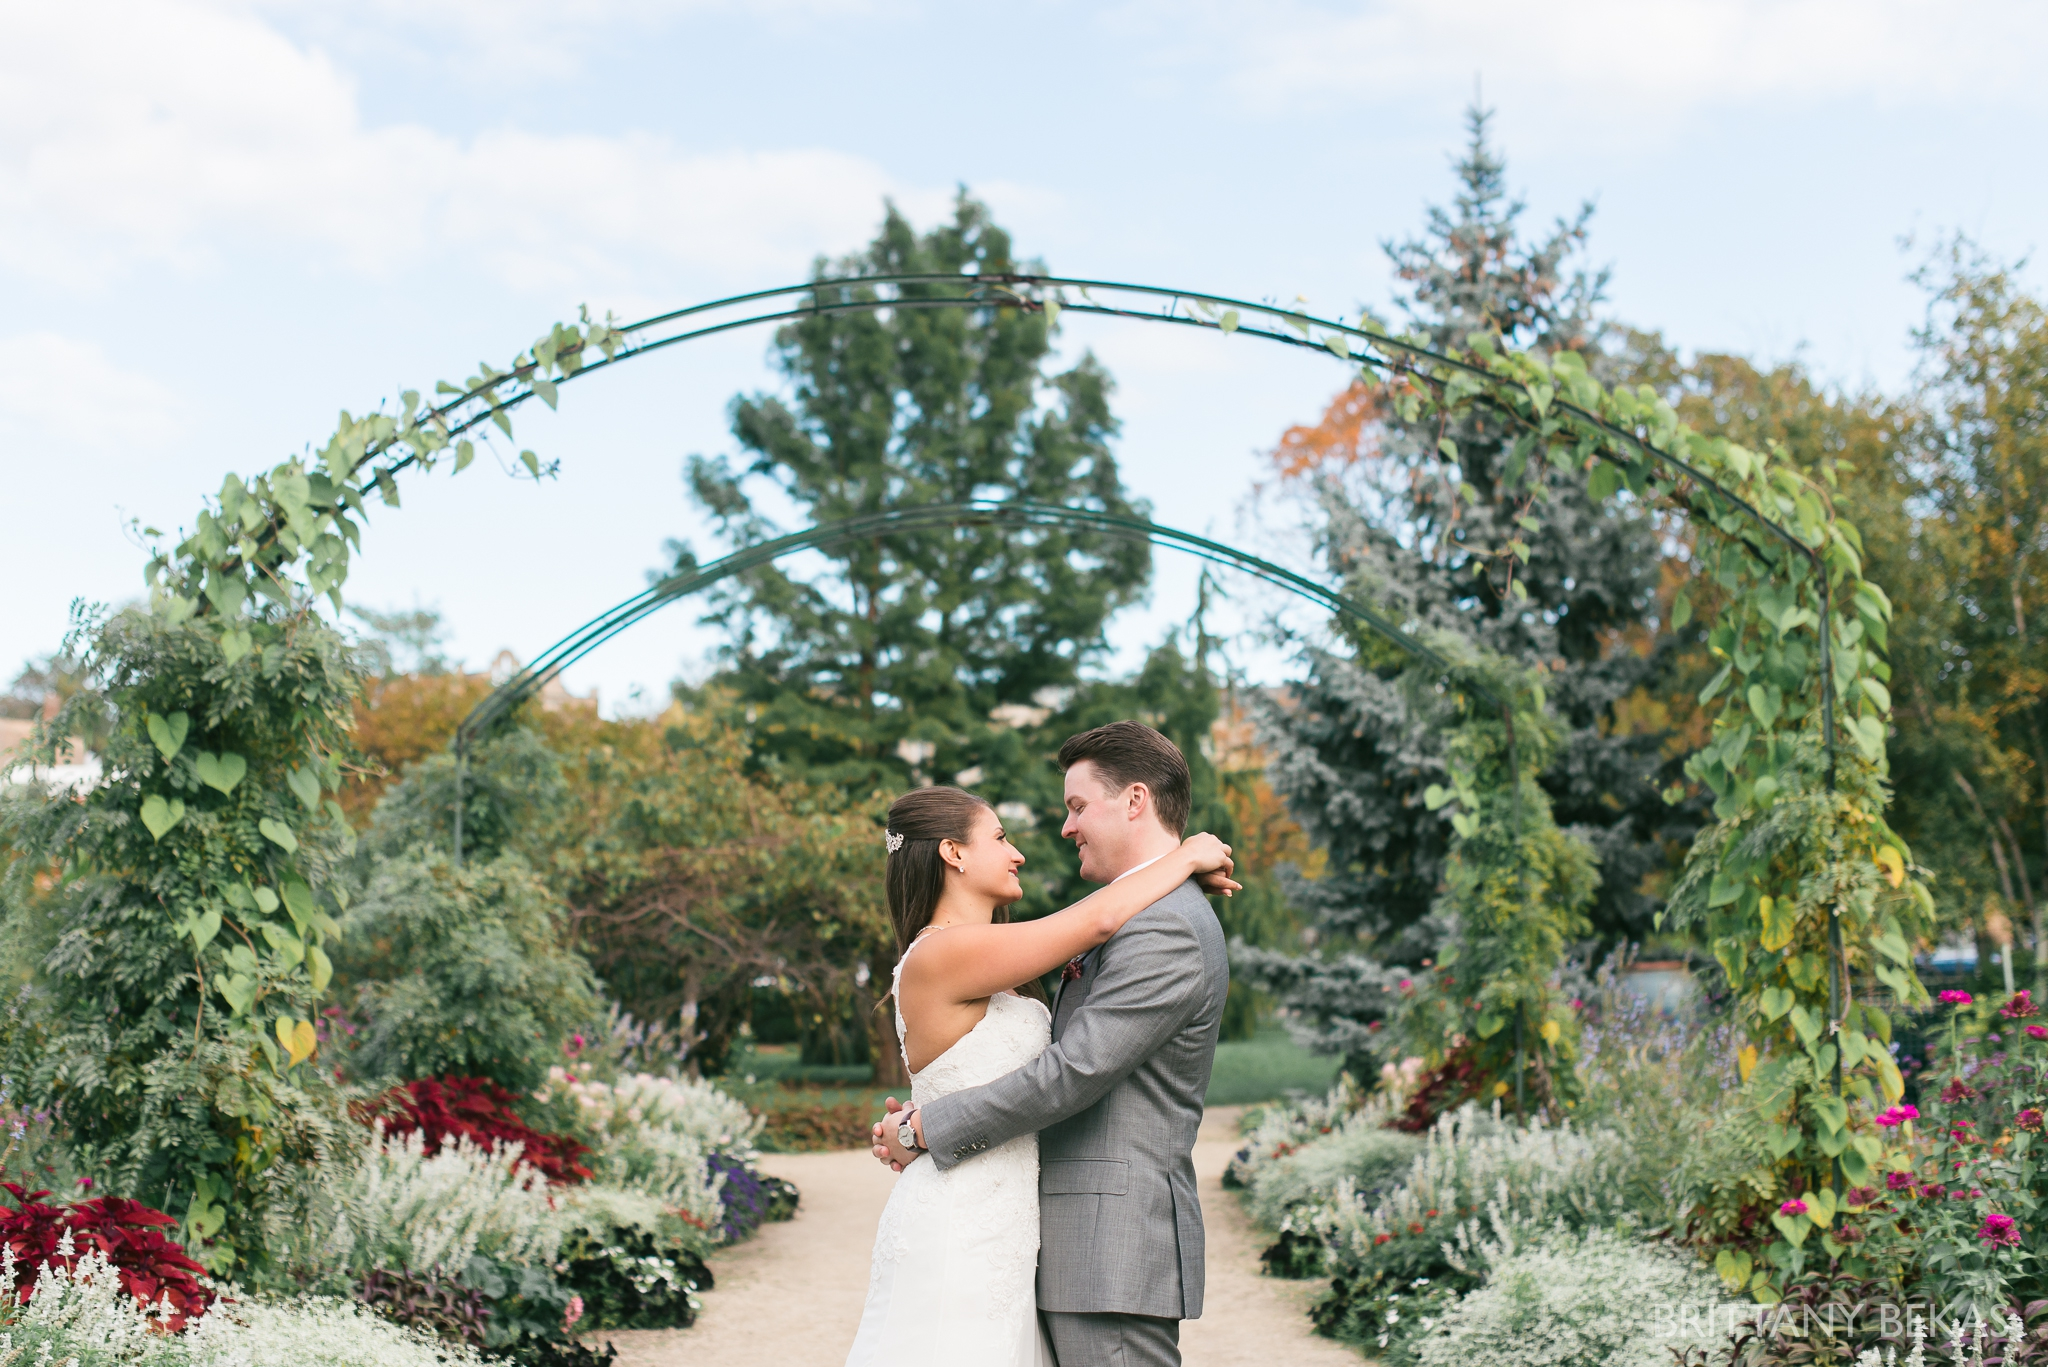 Chicago Wedding Garfield Park Conservatory Wedding Photos - Brittany Bekas Photography_0028